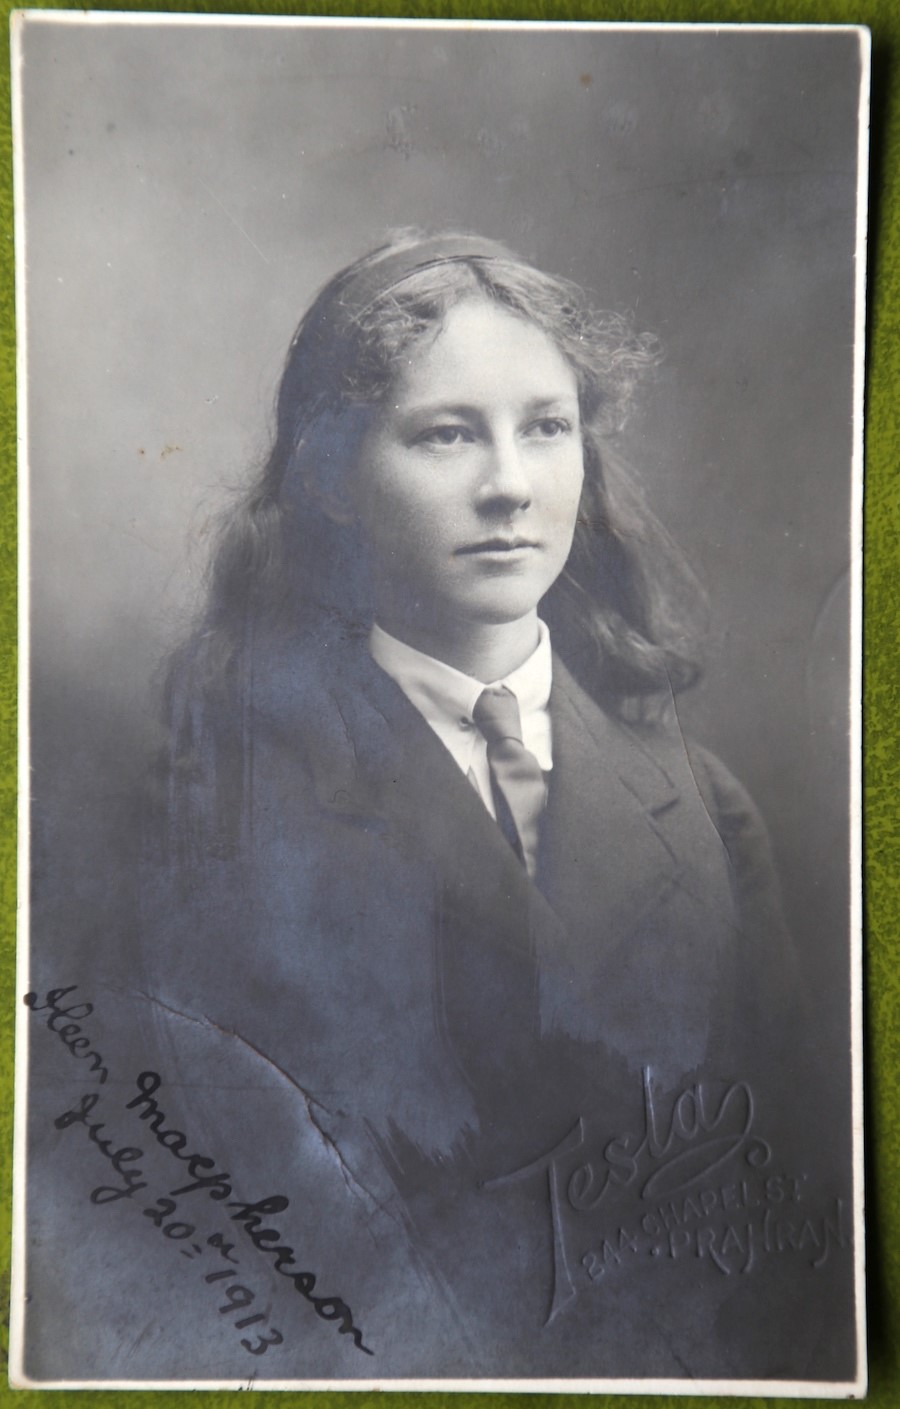 Ileen Macpherson, school photo, 1913 (private collection),  Image supplied by John Paull.